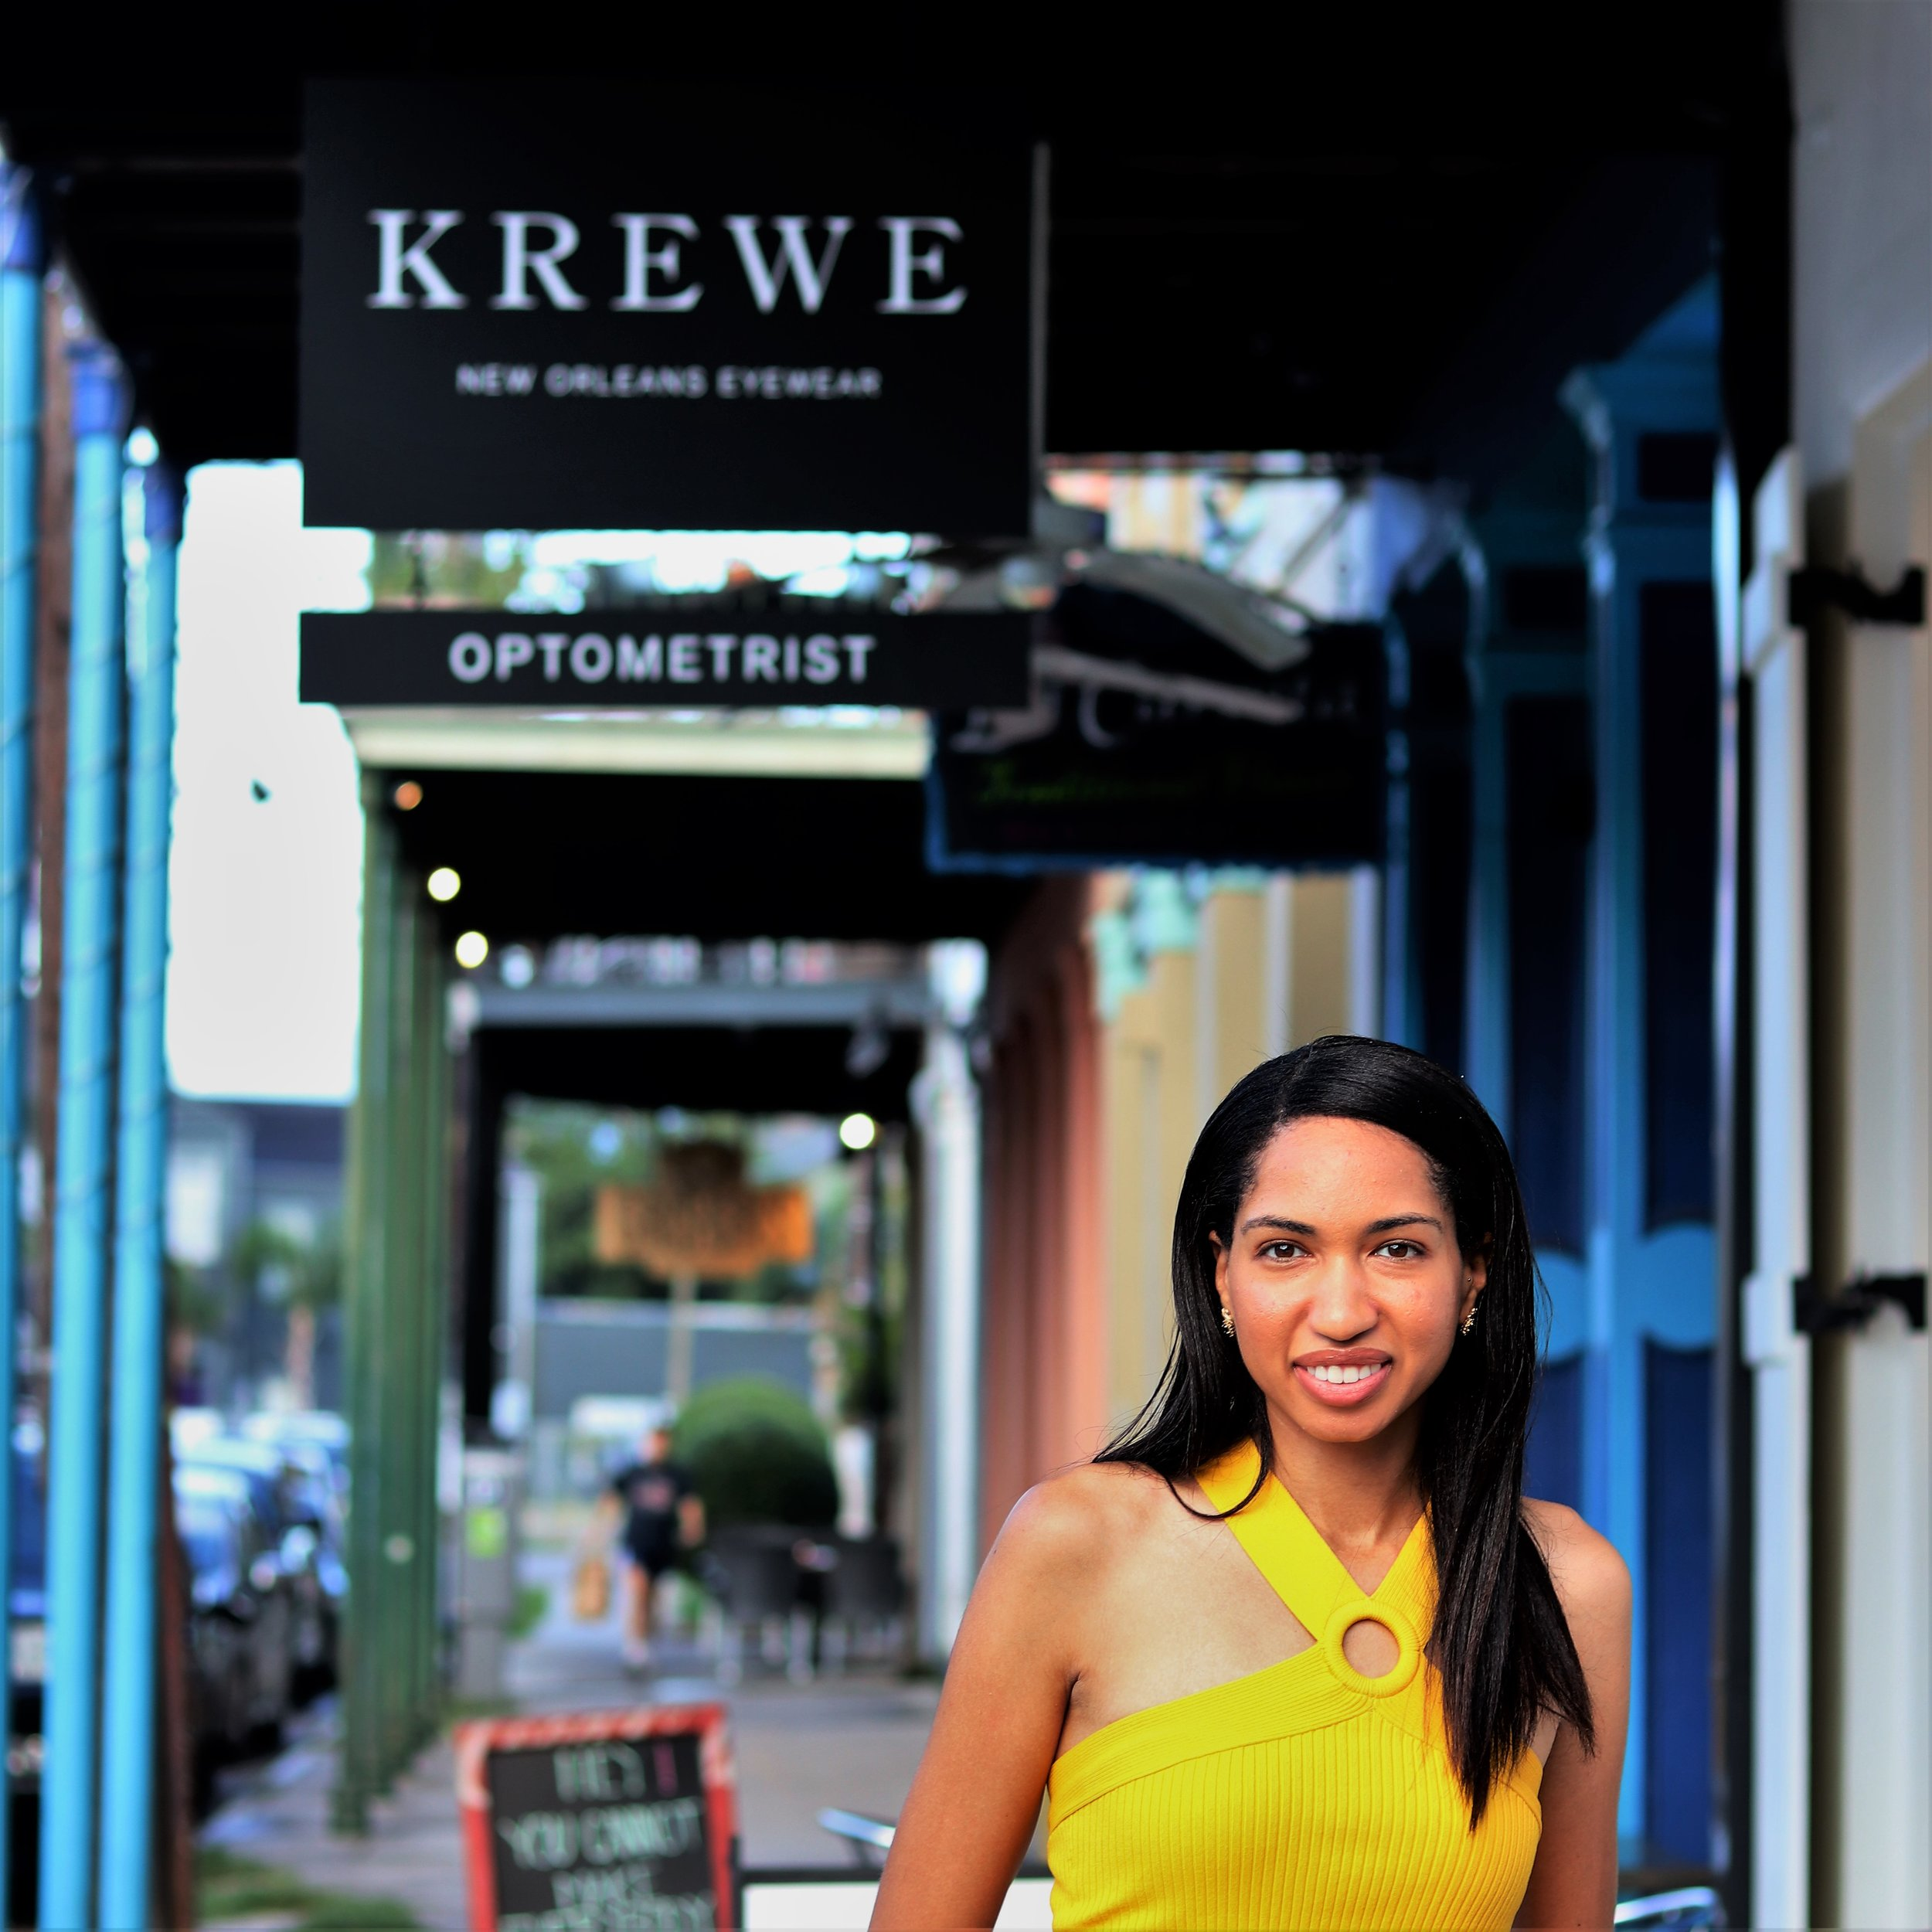 Sample Sale - Saturday and Sunday, September 22-23, Krewe is having their annual Sample Sale, select frames will be 60-80% off; from 7am- 5pm at the Magazine Street location.To RSVP - Click Here